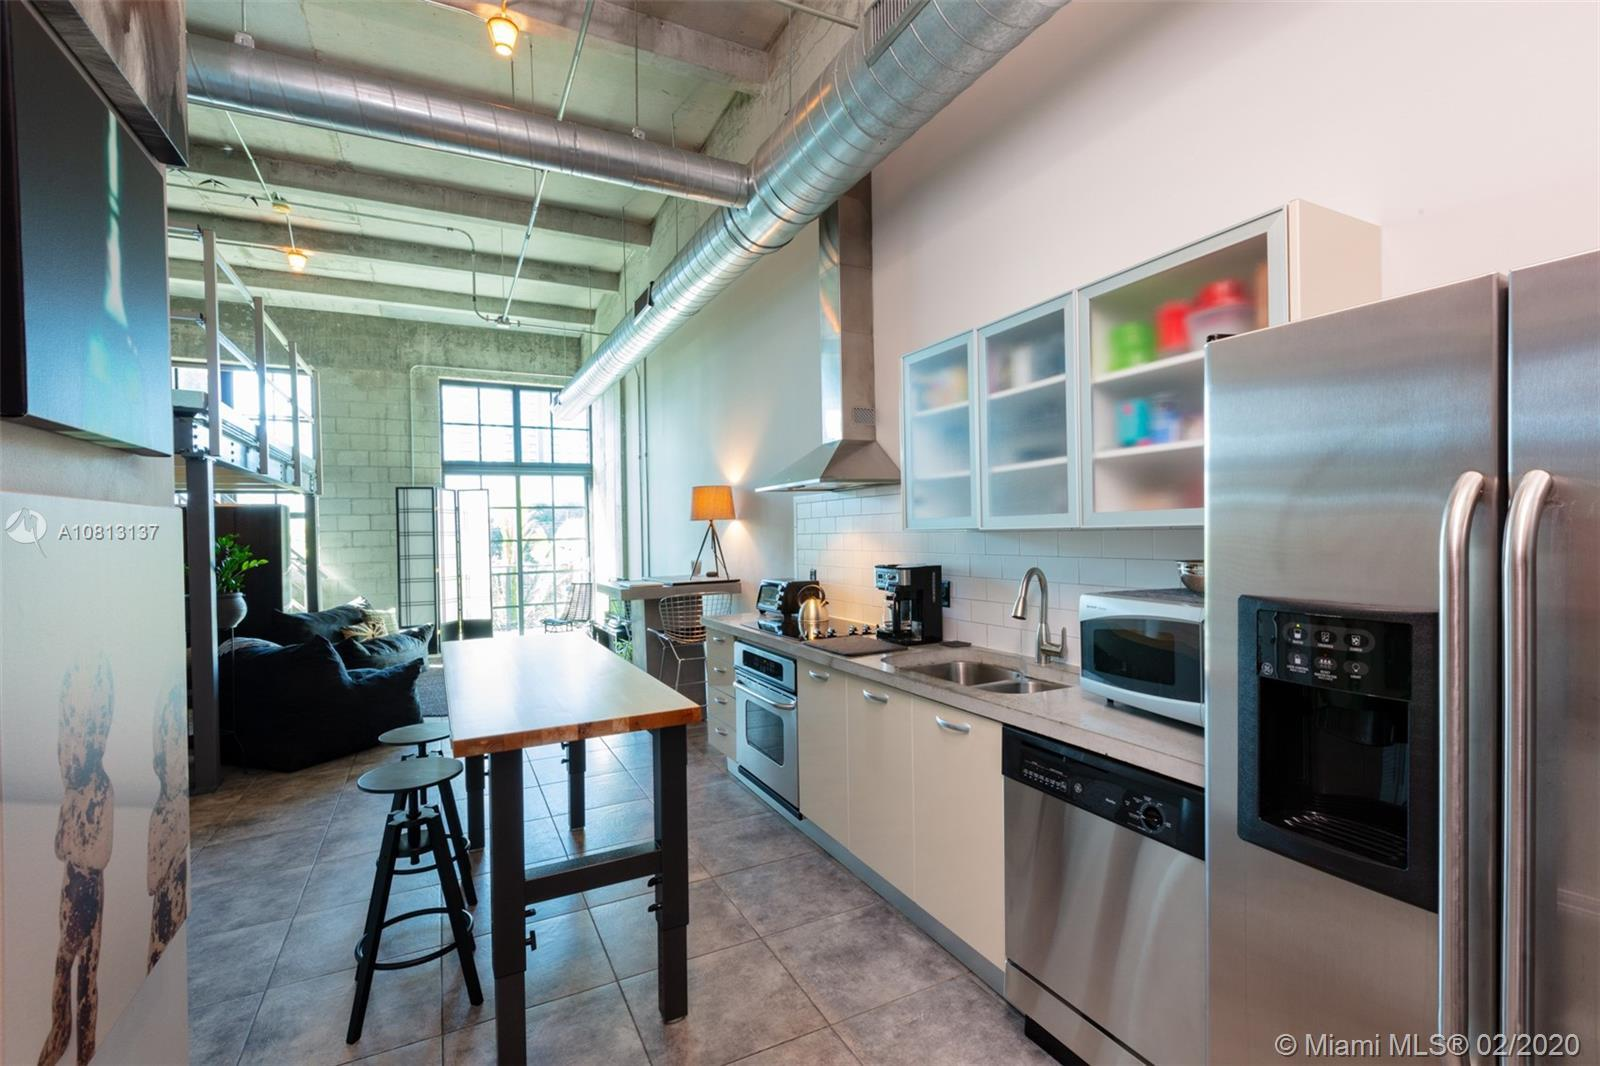 NY Style Industrial Loft with 15 ft ceiling height, stainless steel kitchen appliances and Italian K